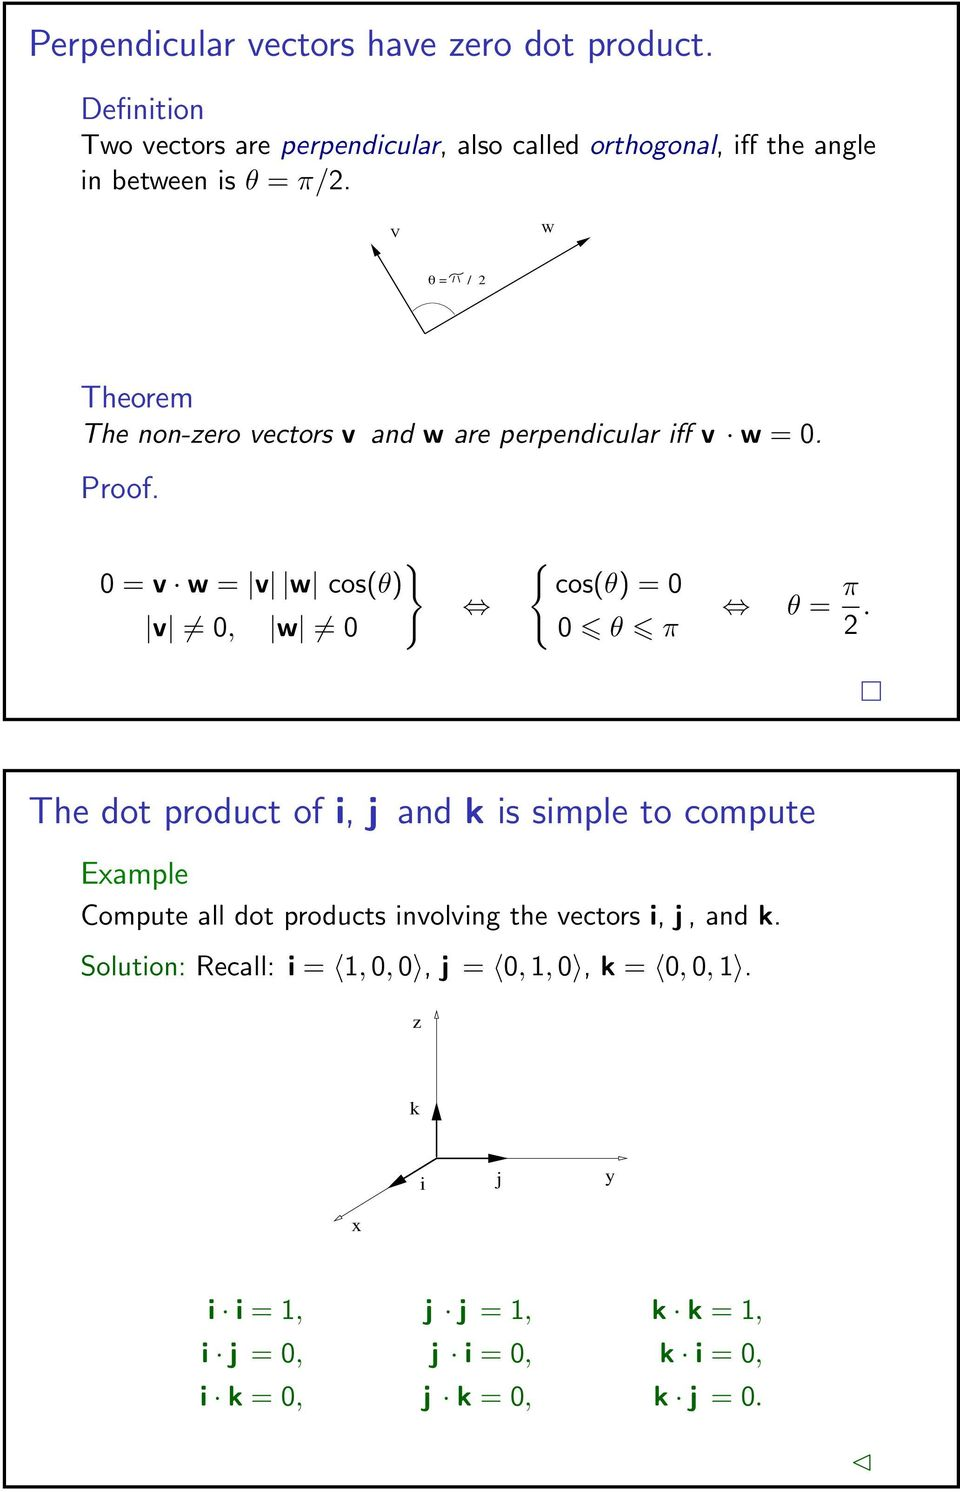 0 = / 2 Theorem The non-zero vectors v and w are perpendicular iff v w = 0. Proof.